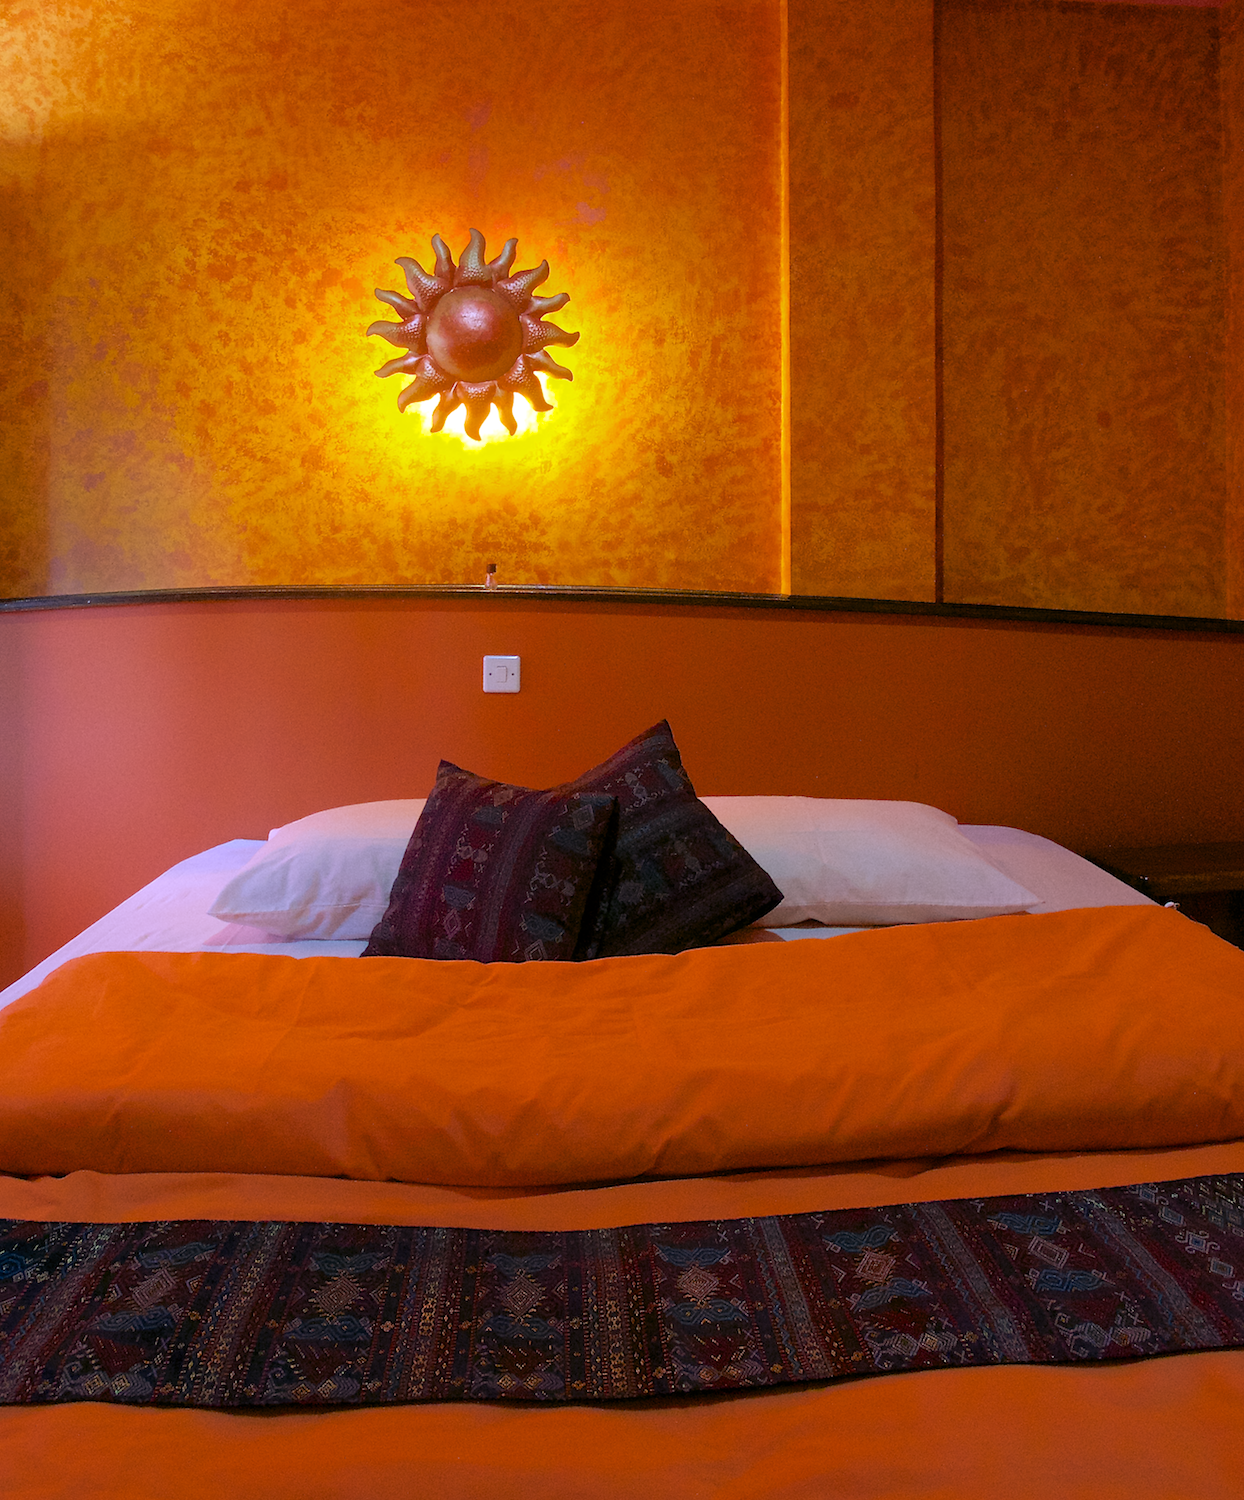 Hotel La Hasienda, Kupang, NTT, Indonesia. Our rooms have comfortable beds in a beautiful, Mexican inspired setting.  Photo © Basil Rolandsen (http://media.bouvet.org)